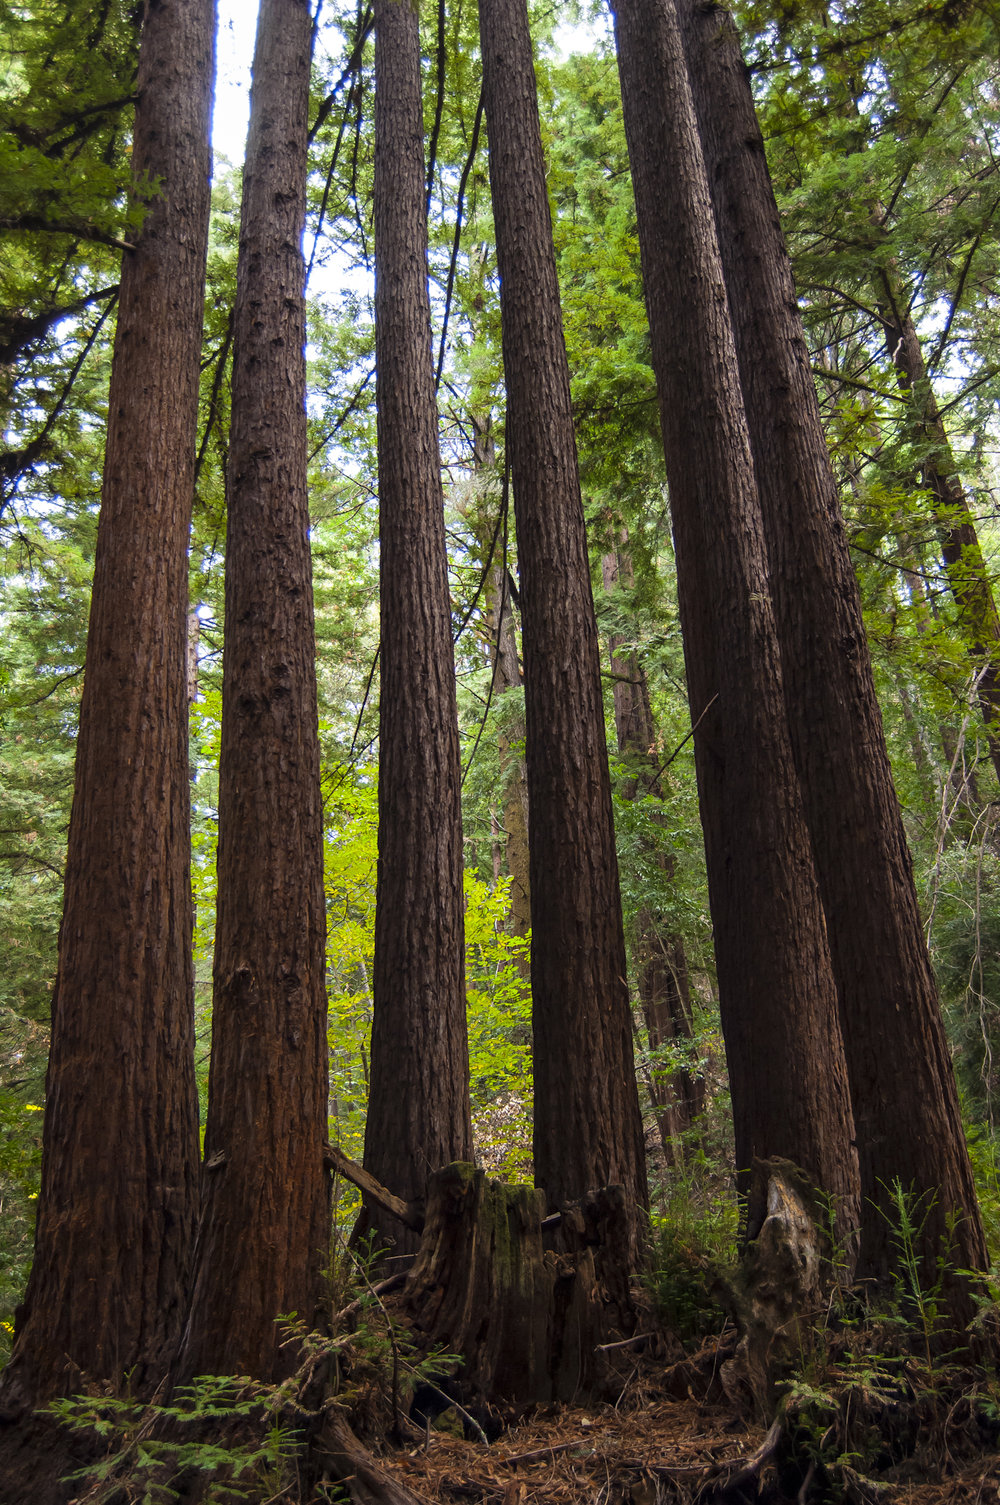 Redwoods on the vineyard land.